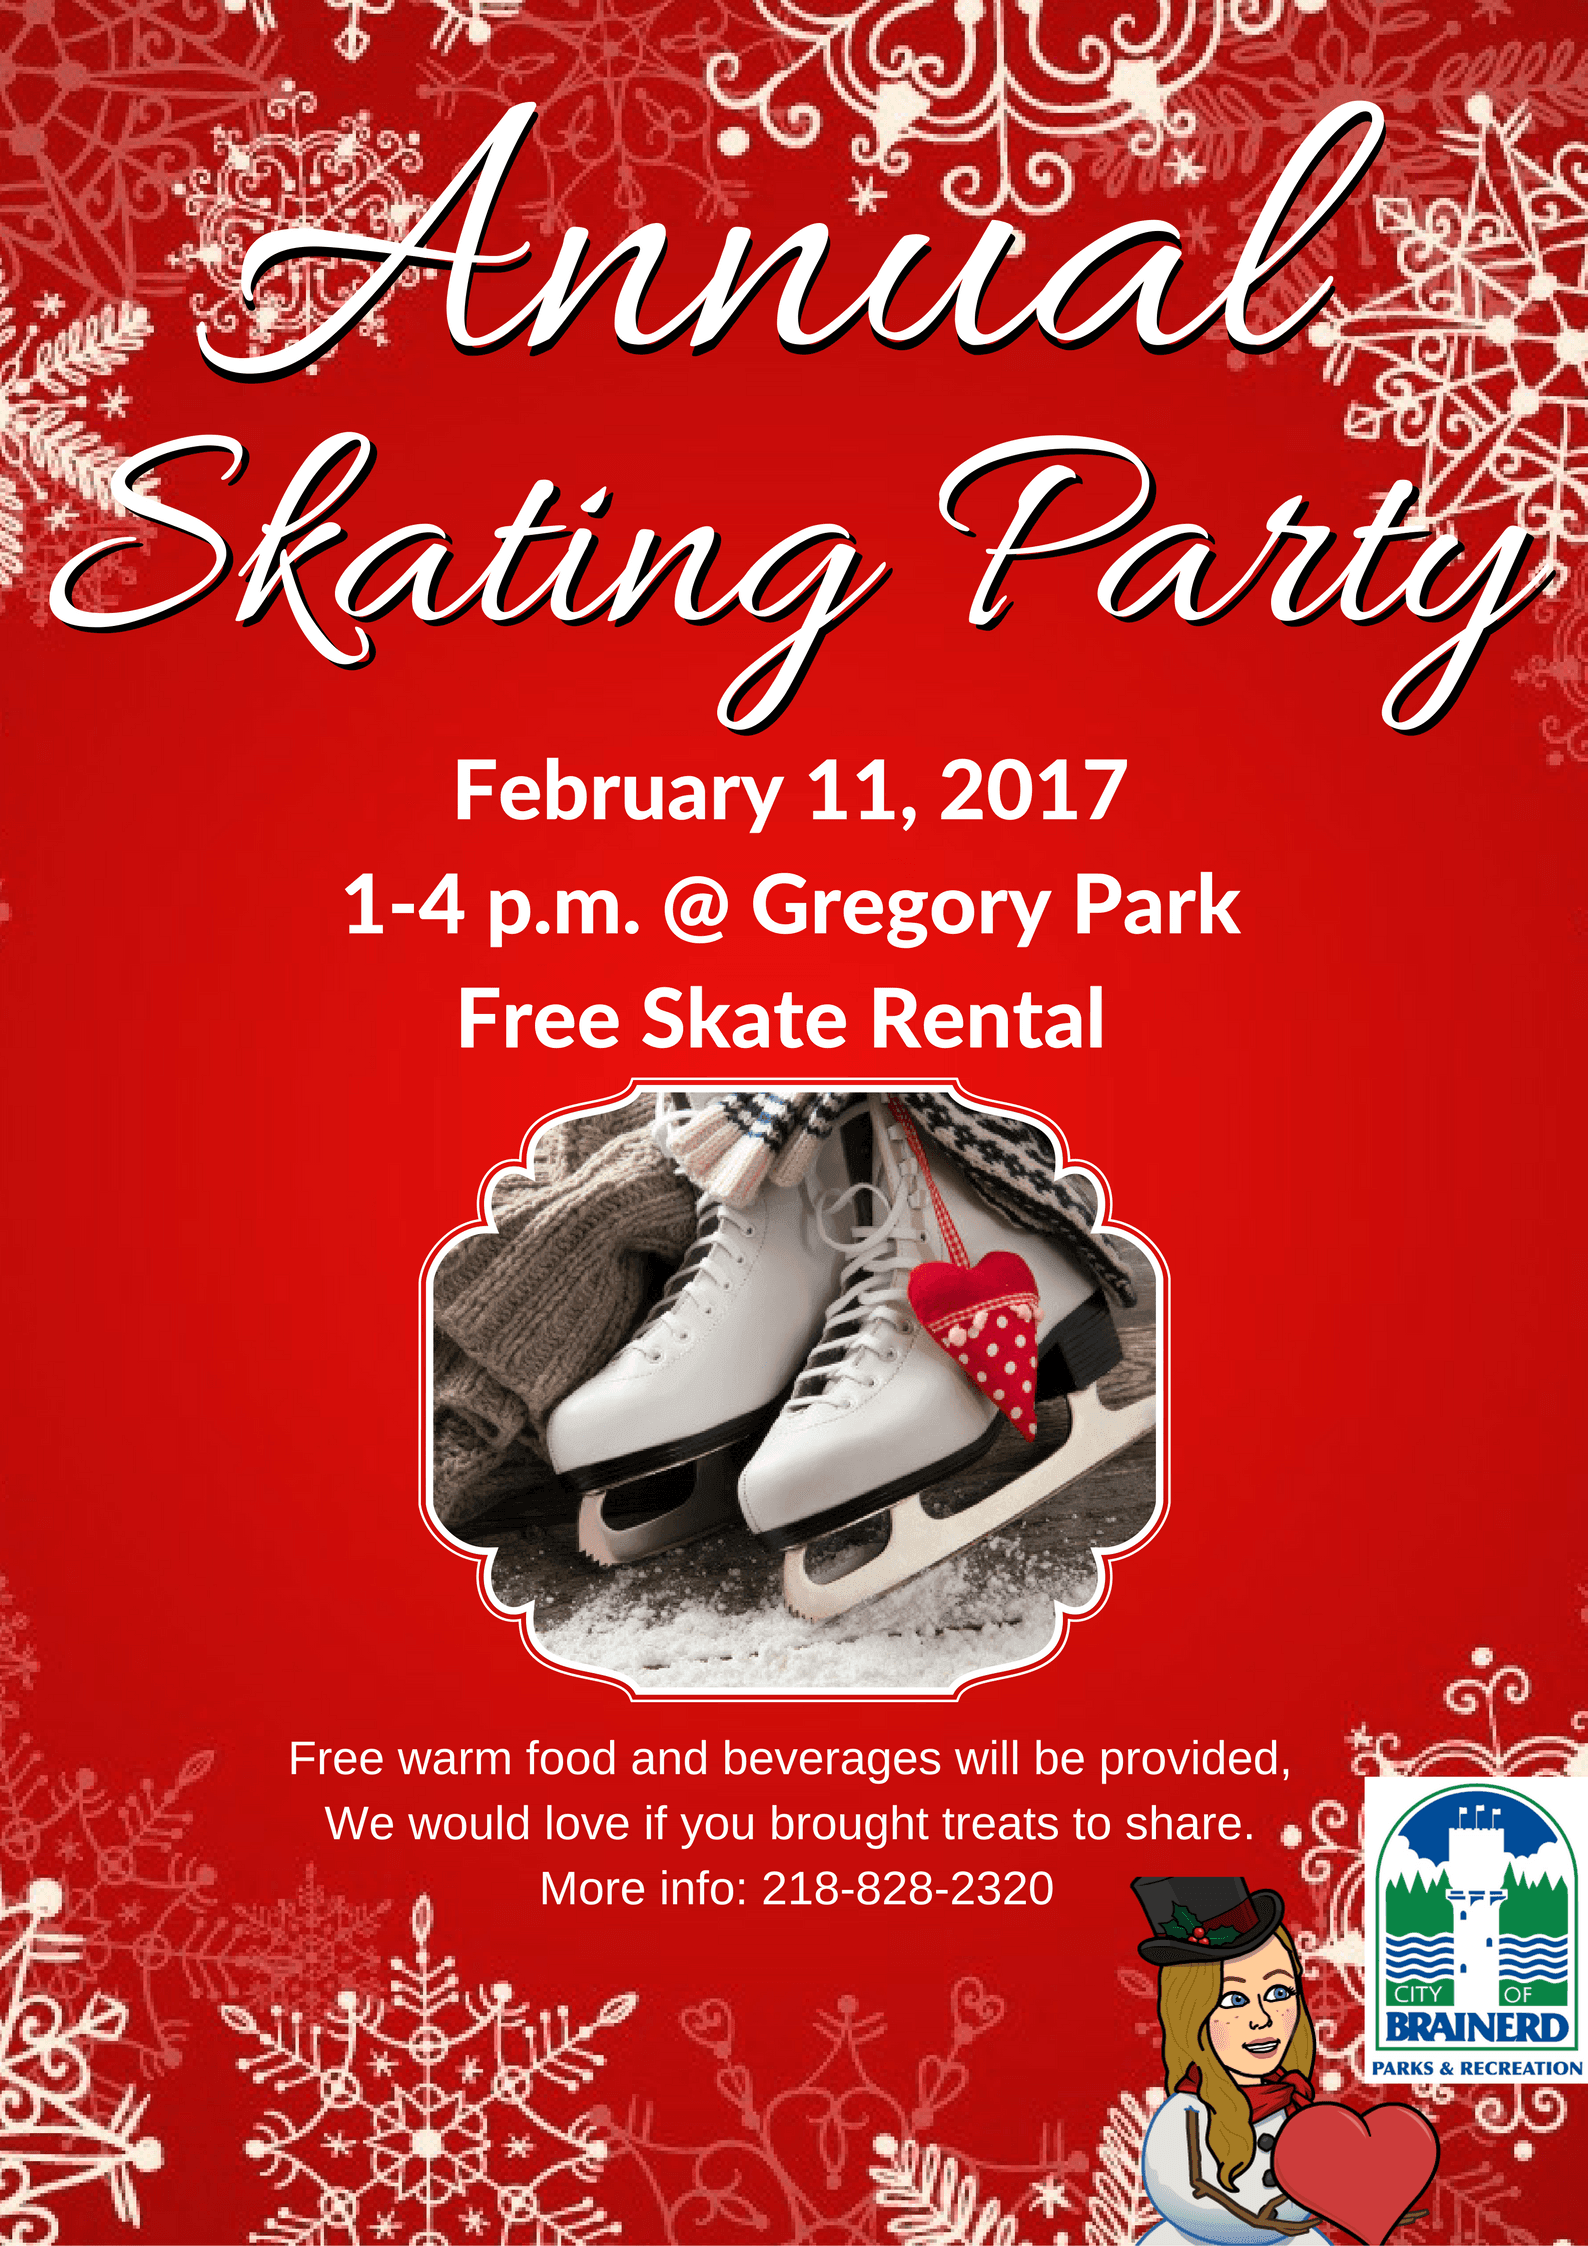 2017 Annual Skating Party Flyer